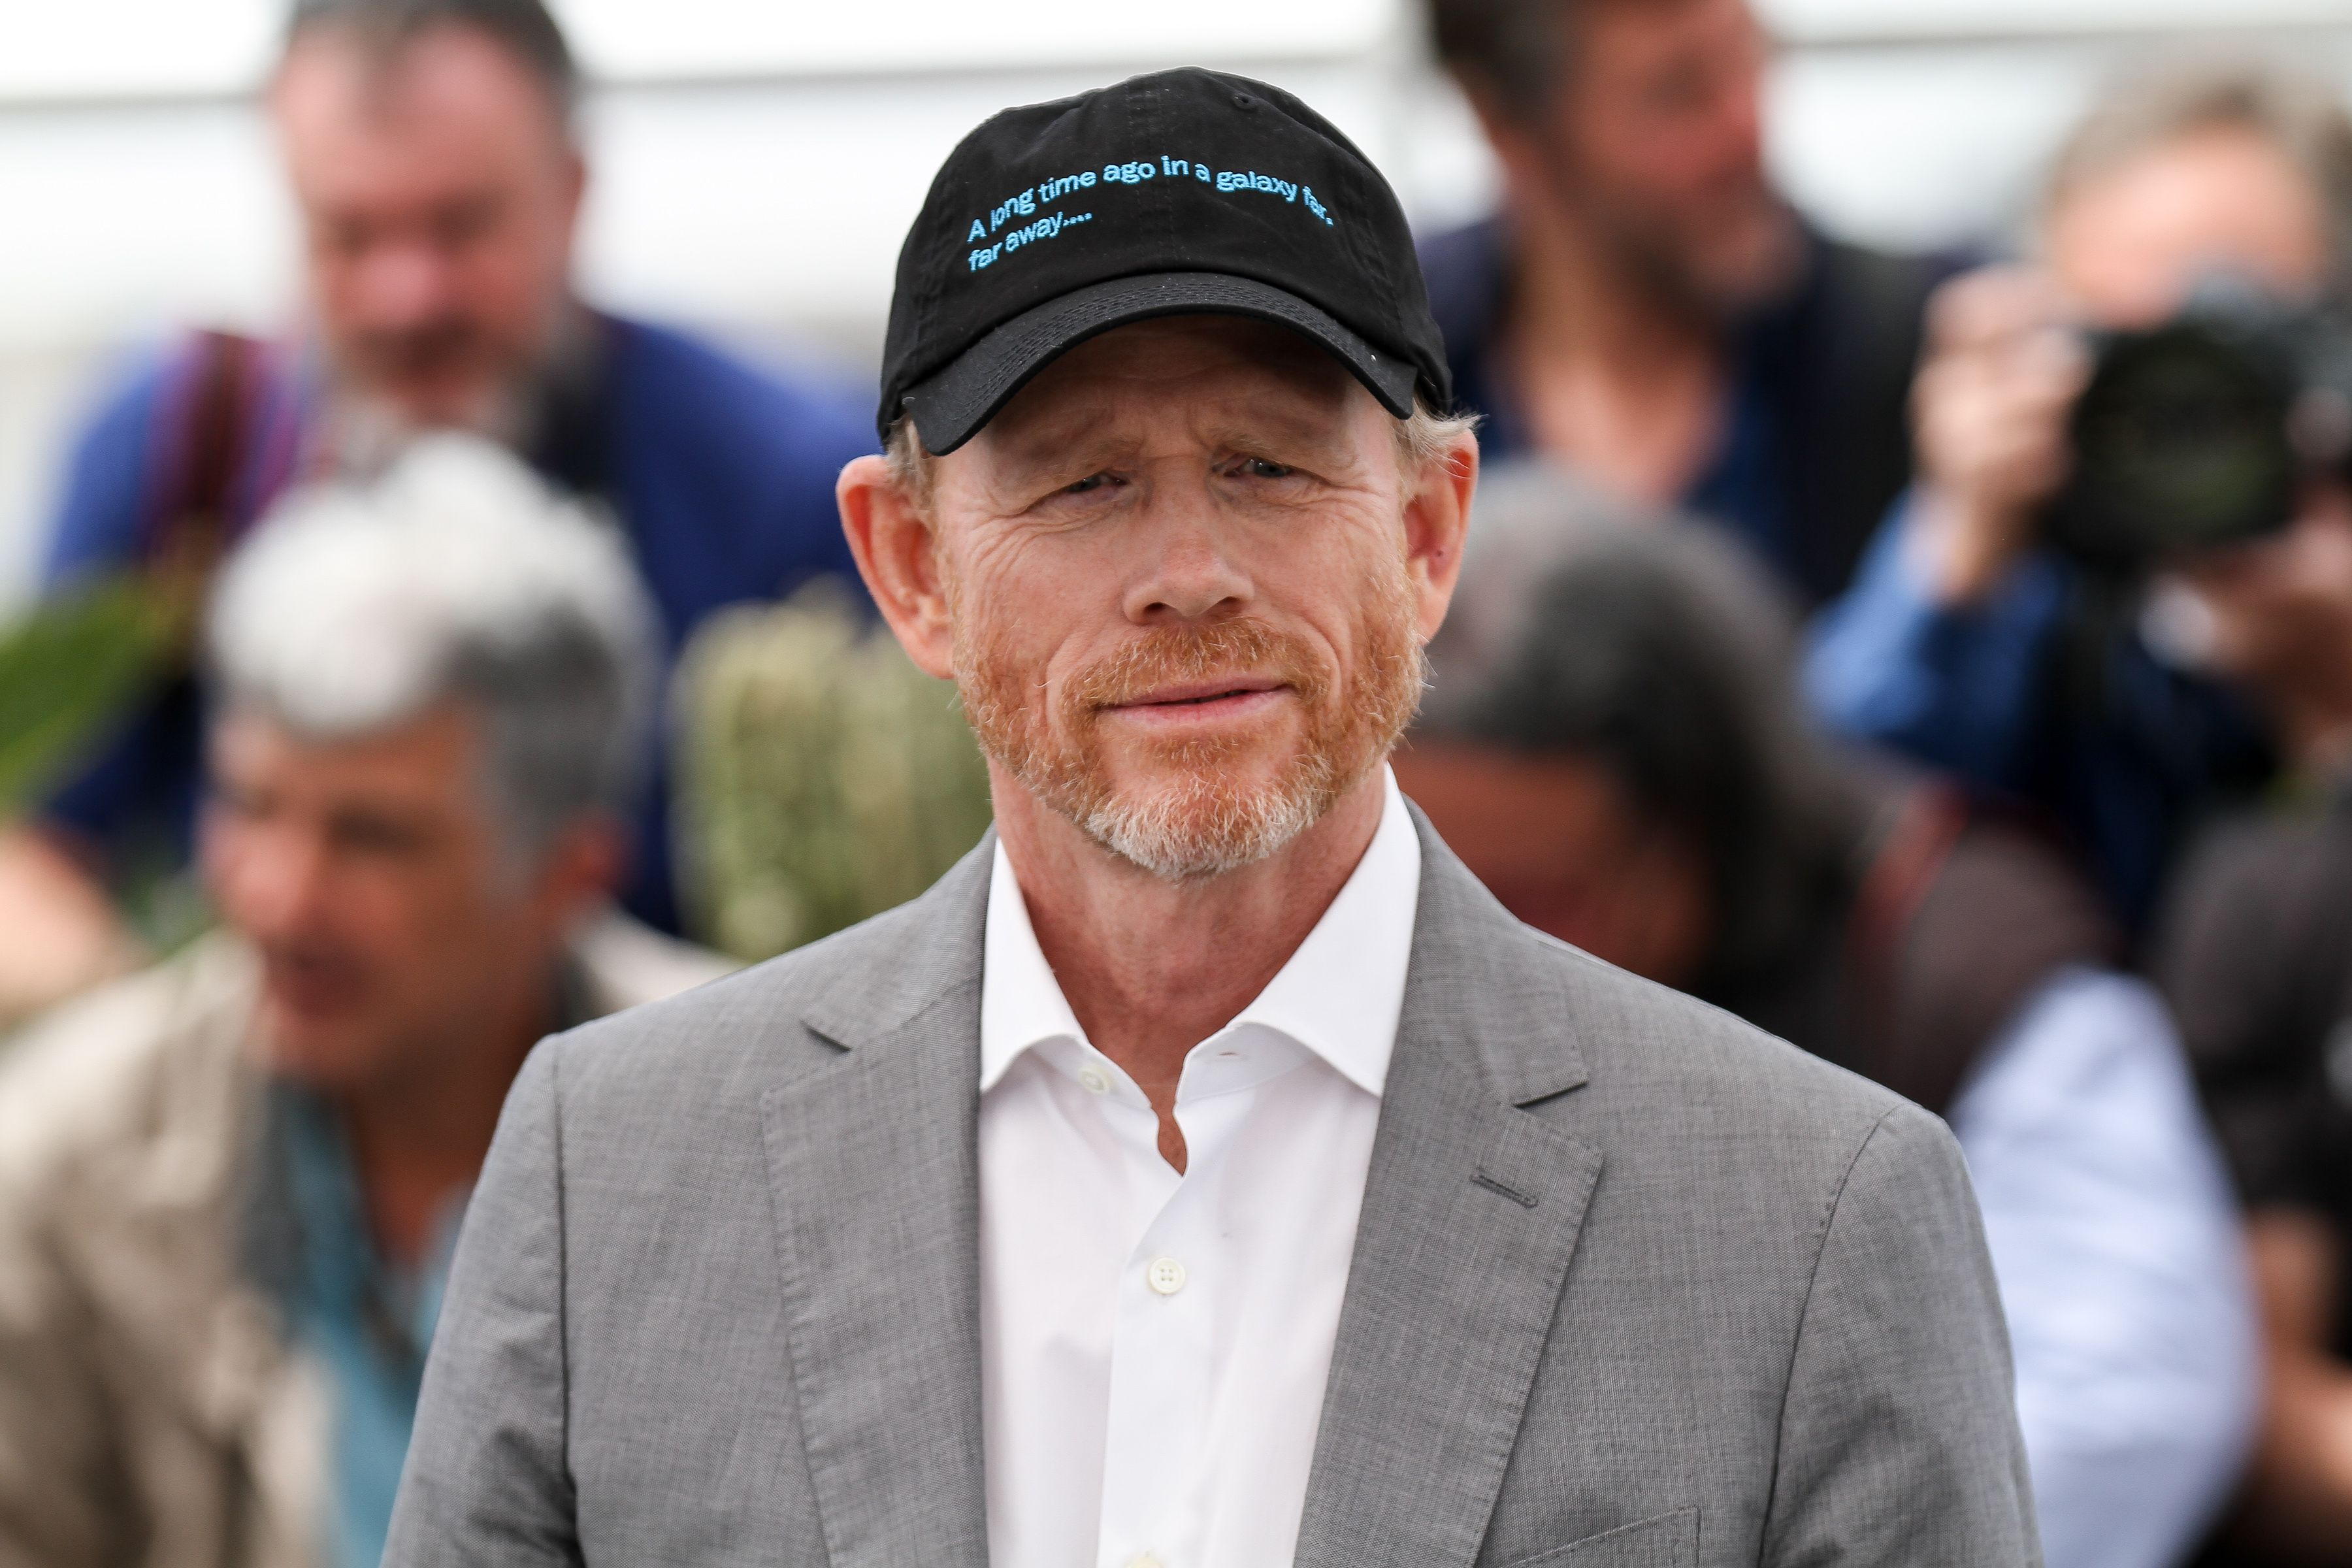 Ron Howard Feels Badly About Box Office For Solo